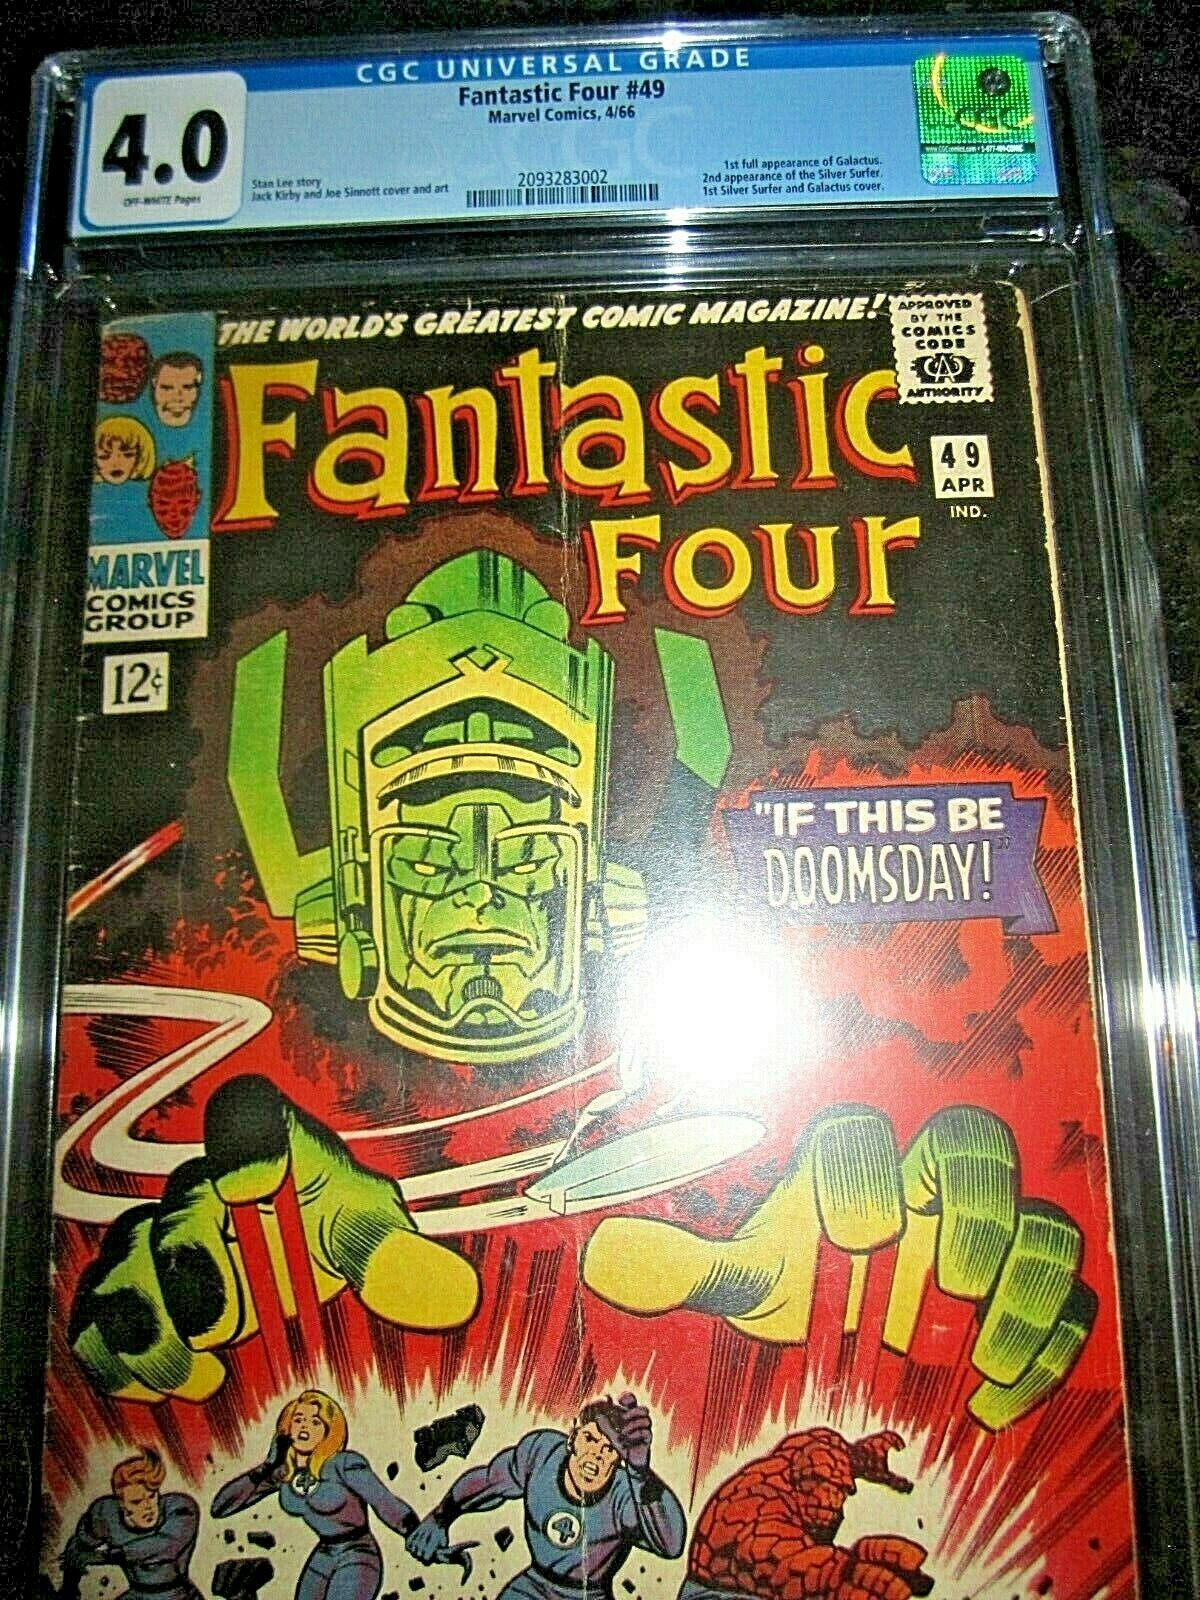 Fantastic Four #49 CGC 4.0 First cover appearance of Silver Surfer 1 2 3 4